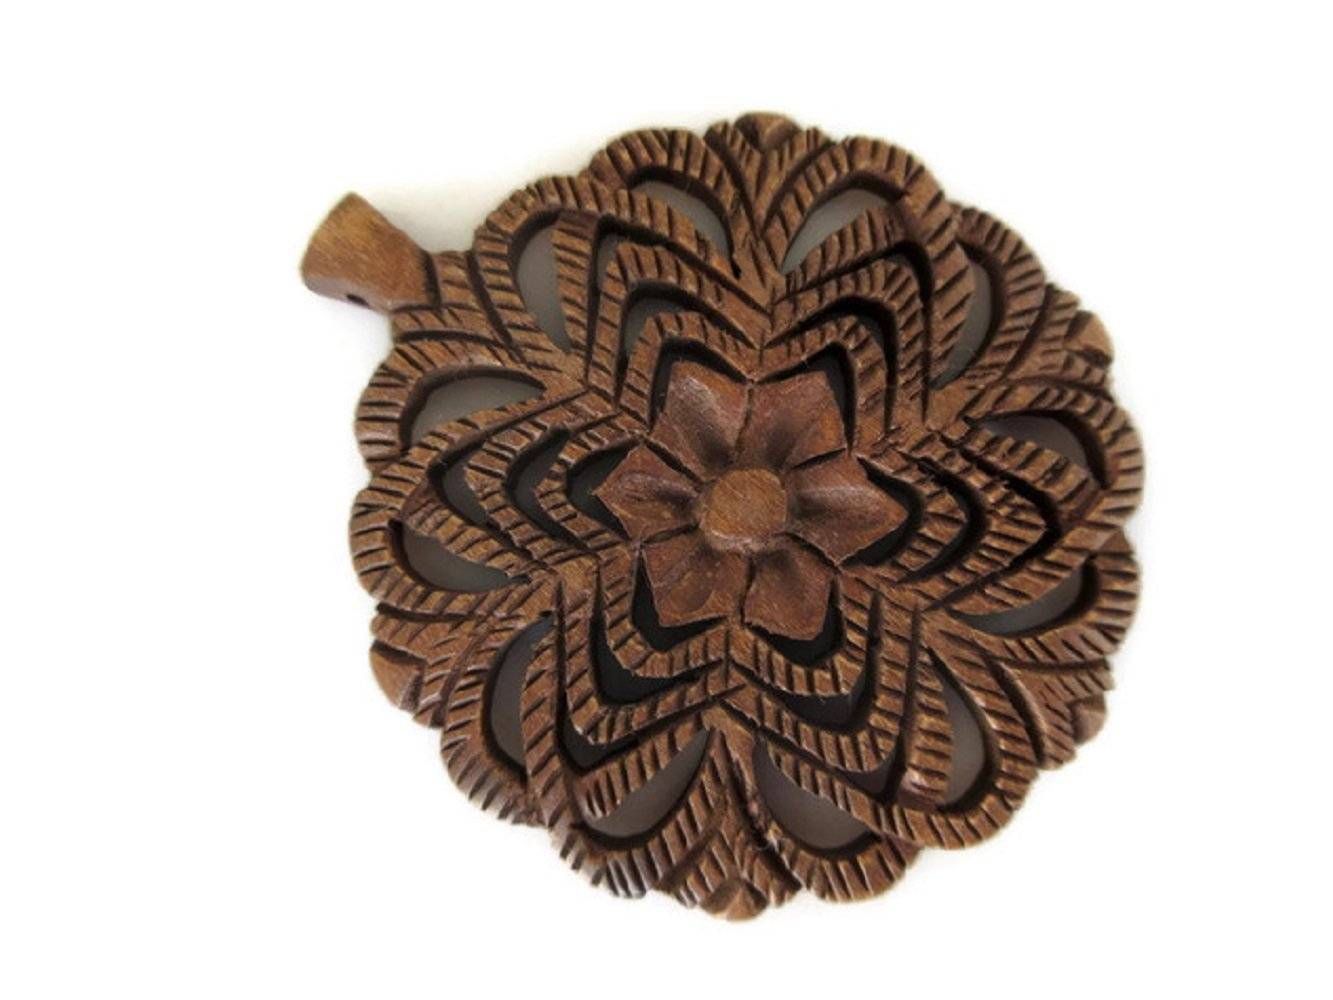 Hand Carved Wooden Filigree Flower Pendant, Handmade Pendant, Wood Art And Craft Framing Supplies Jewelry, GDS1046/17 (20 Pieces)